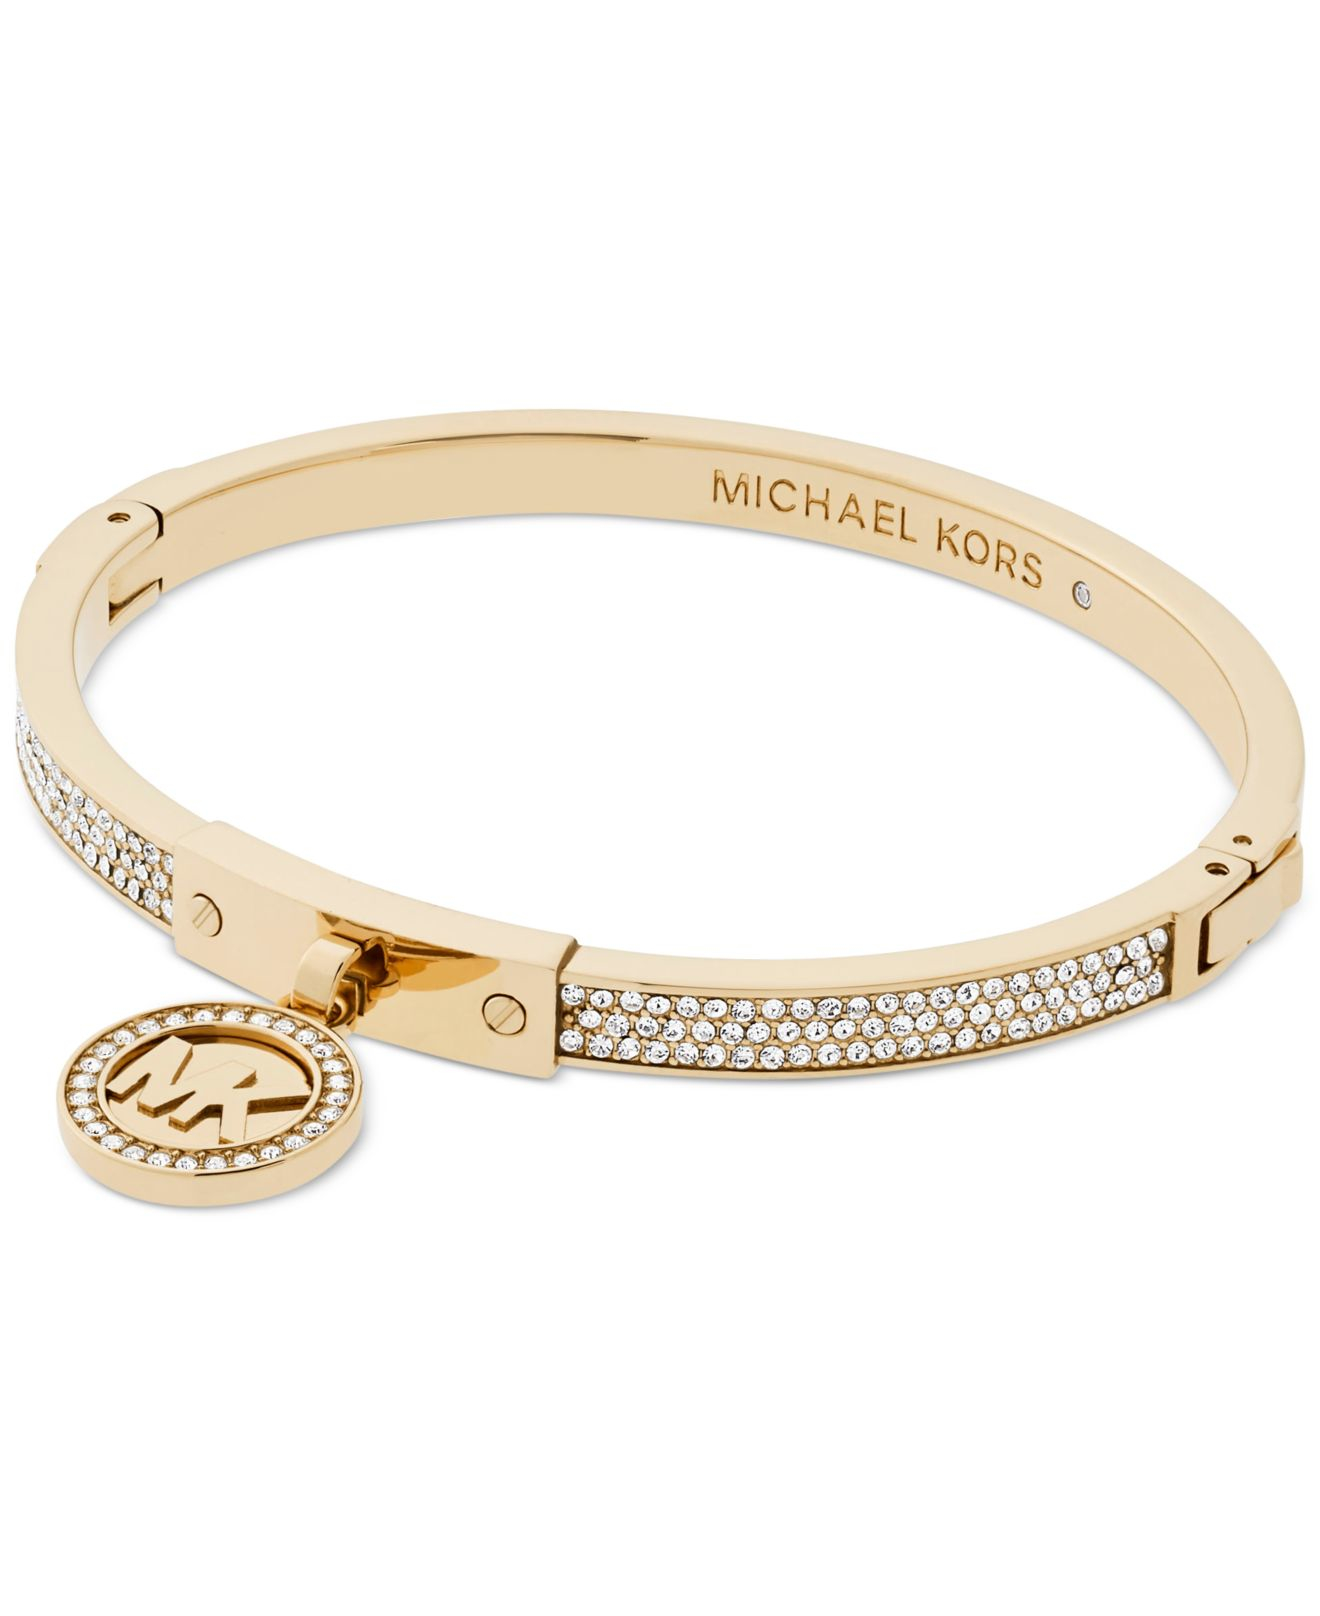 michael kors logo pav hinged bangle bracelet in metallic lyst. Black Bedroom Furniture Sets. Home Design Ideas